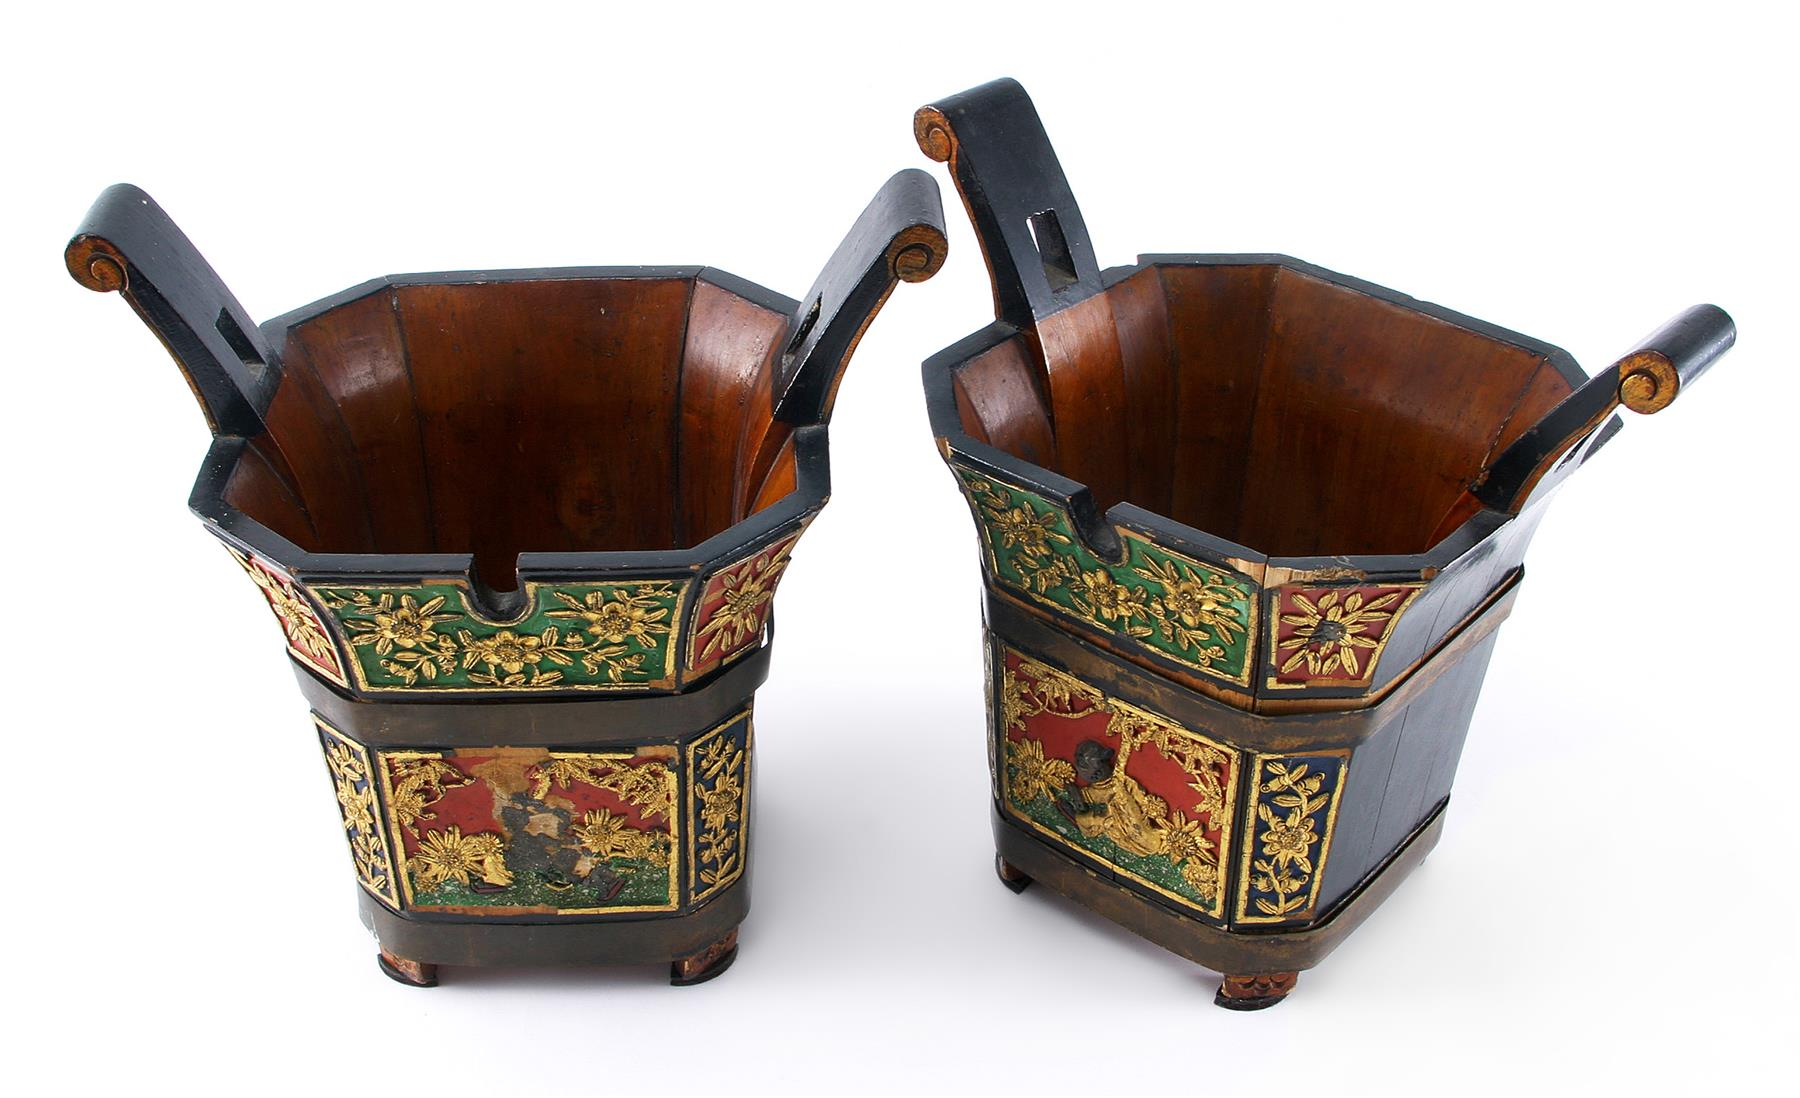 PAIR OF POLYCHROME PAINTED CACHE POTS